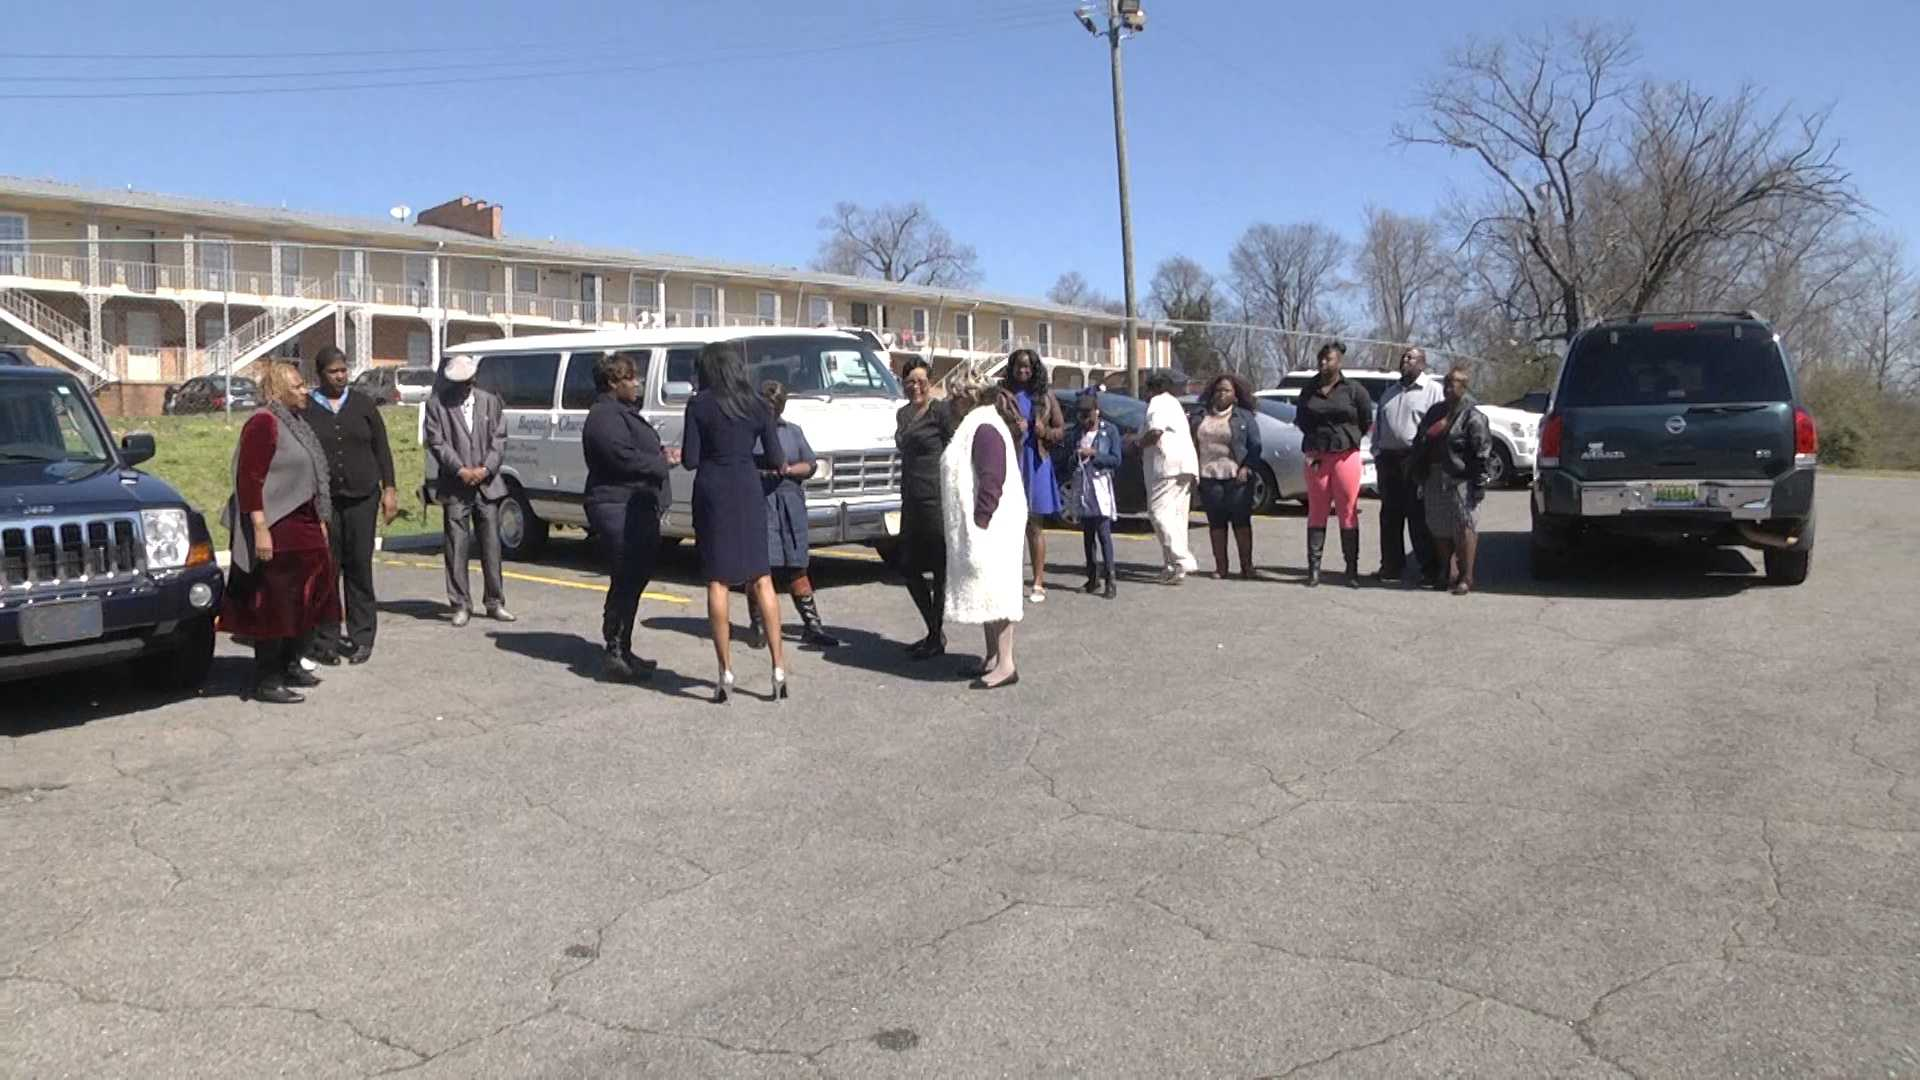 When WVTM 13 News arrived at Antioch Missionary Baptist Church on Warrior Road in Birmingham on Sunday morning, members were outside having church.